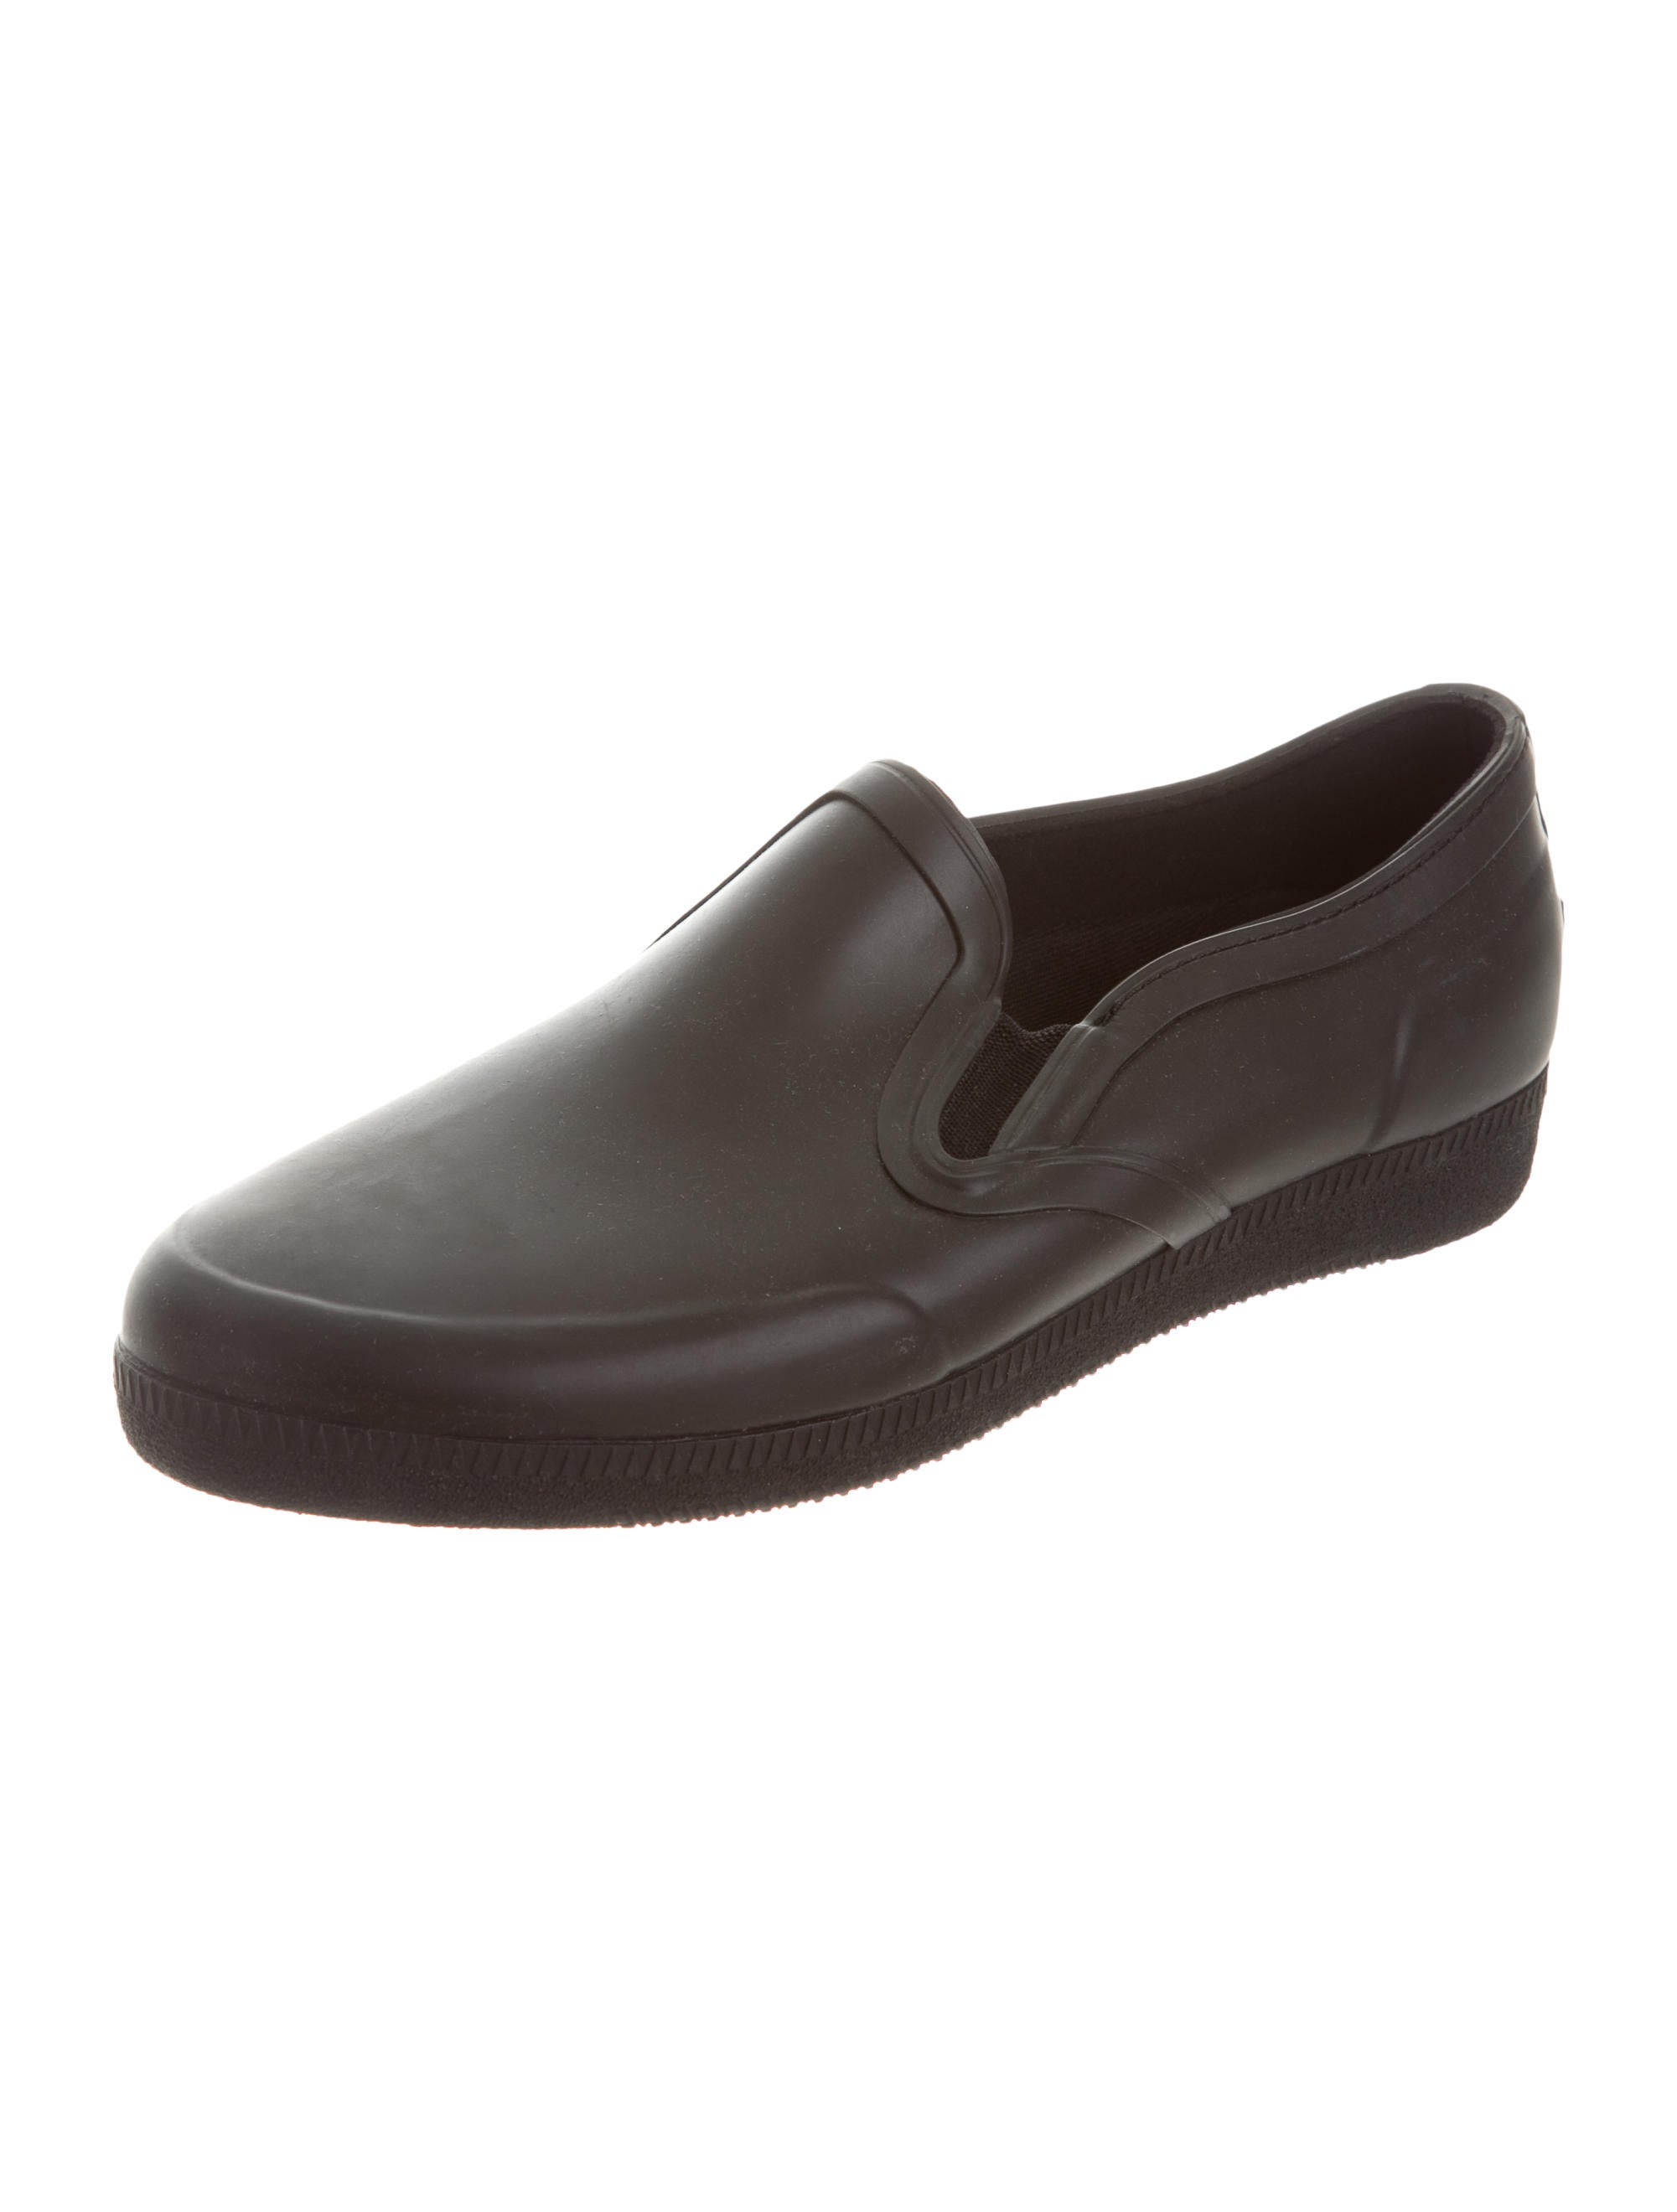 rubber slip on sneakers shoes wh821068 the